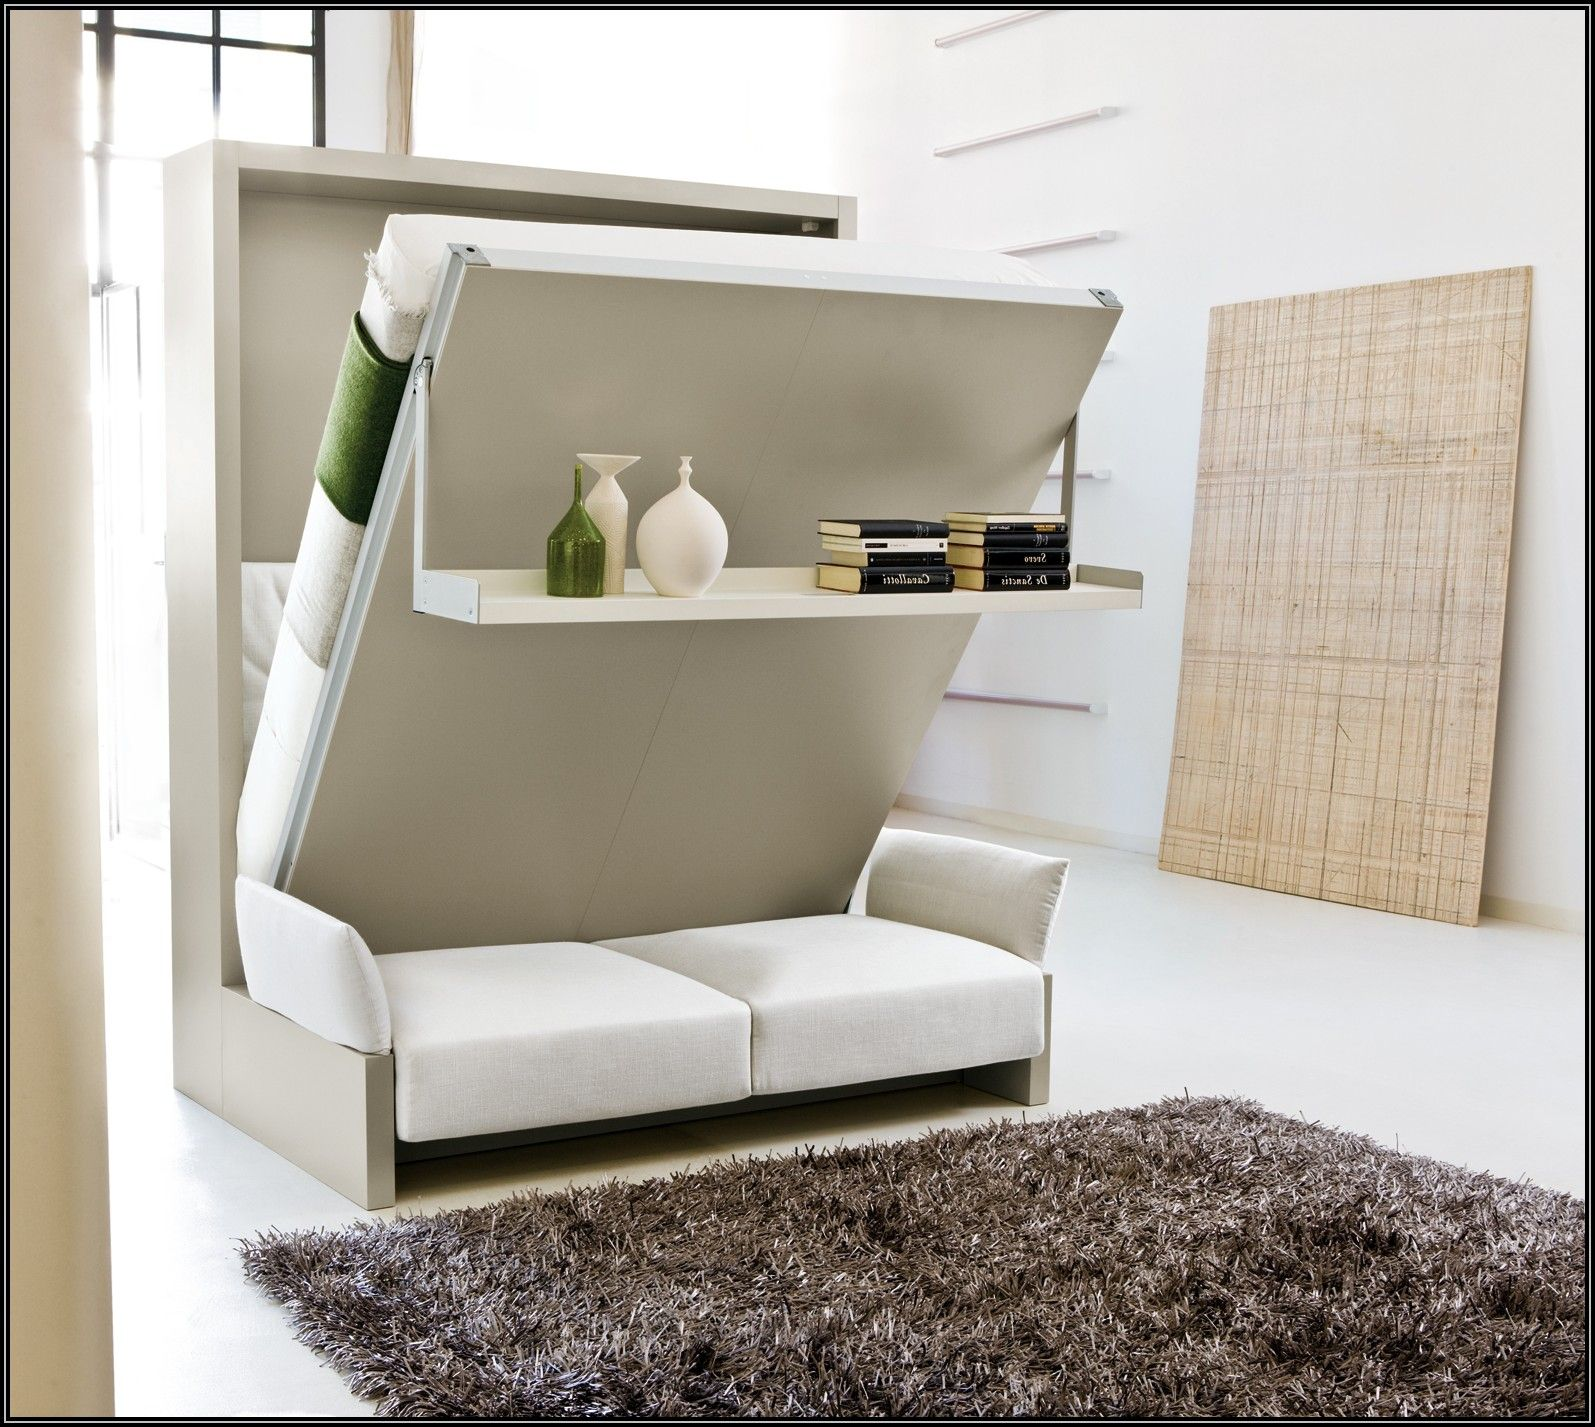 Save small space in a bedroom using murphy bed ikea outstanding murphy bed ikea with - Sofa beds small spaces property ...